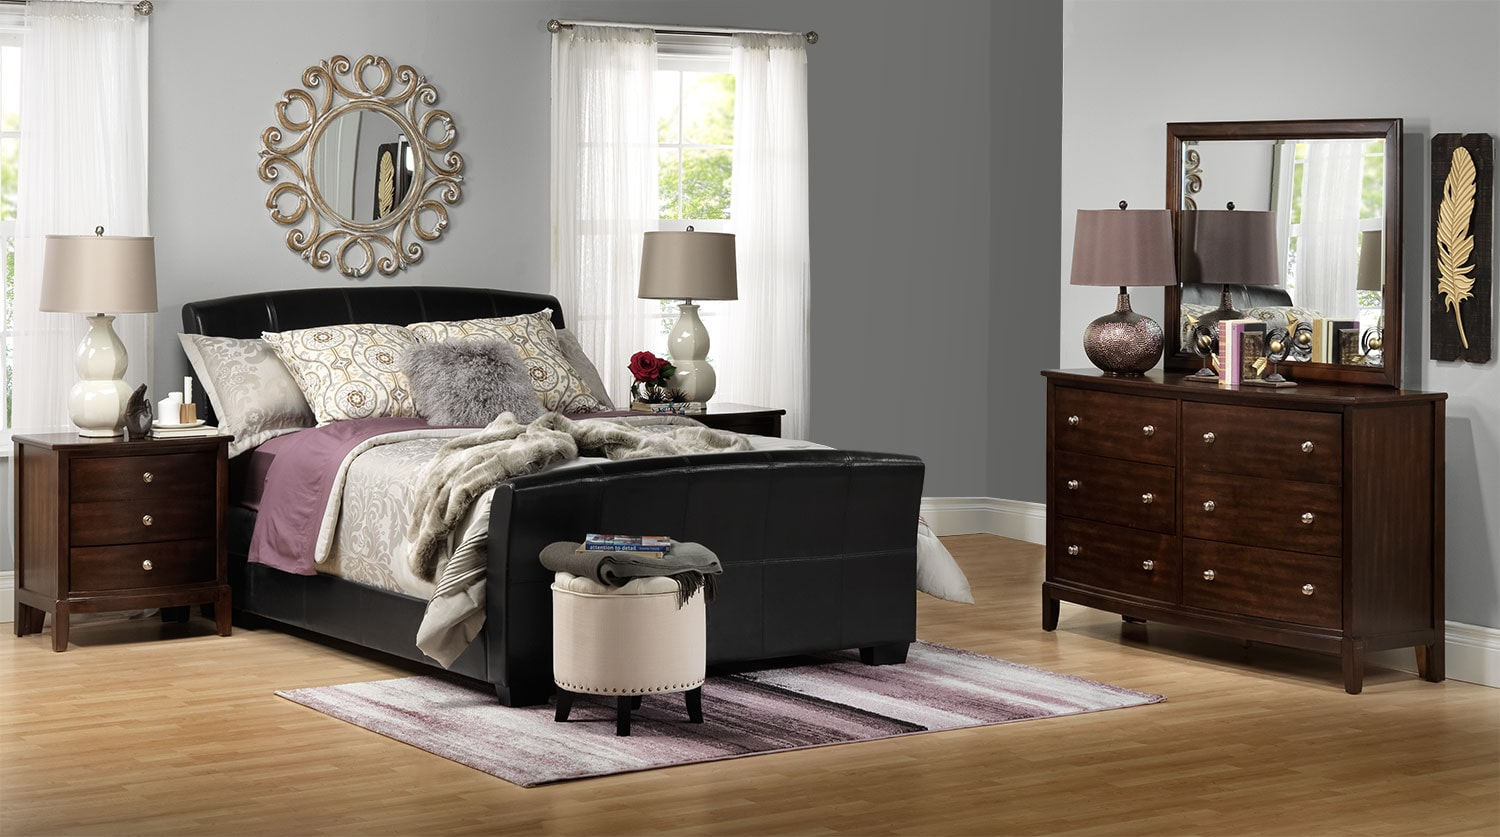 [New Manhattan 5-Piece Queen Bedroom Set]